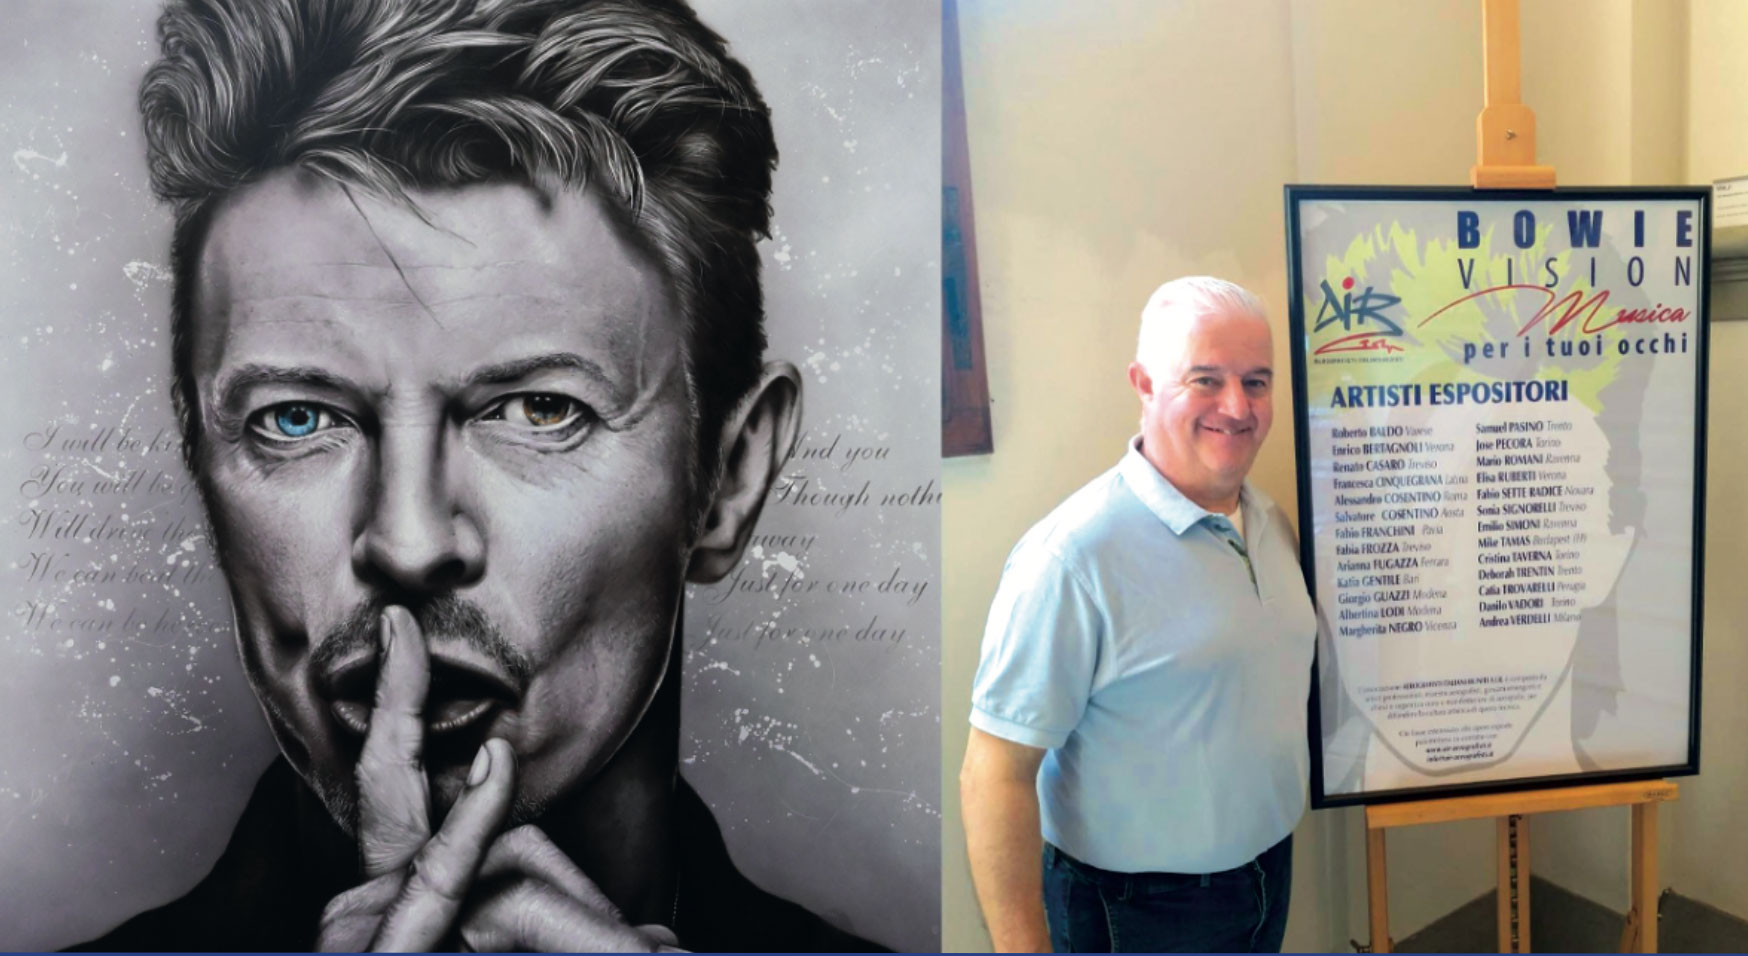 Bowie Vision: Italian Airbrush artists tribute to David Bowie